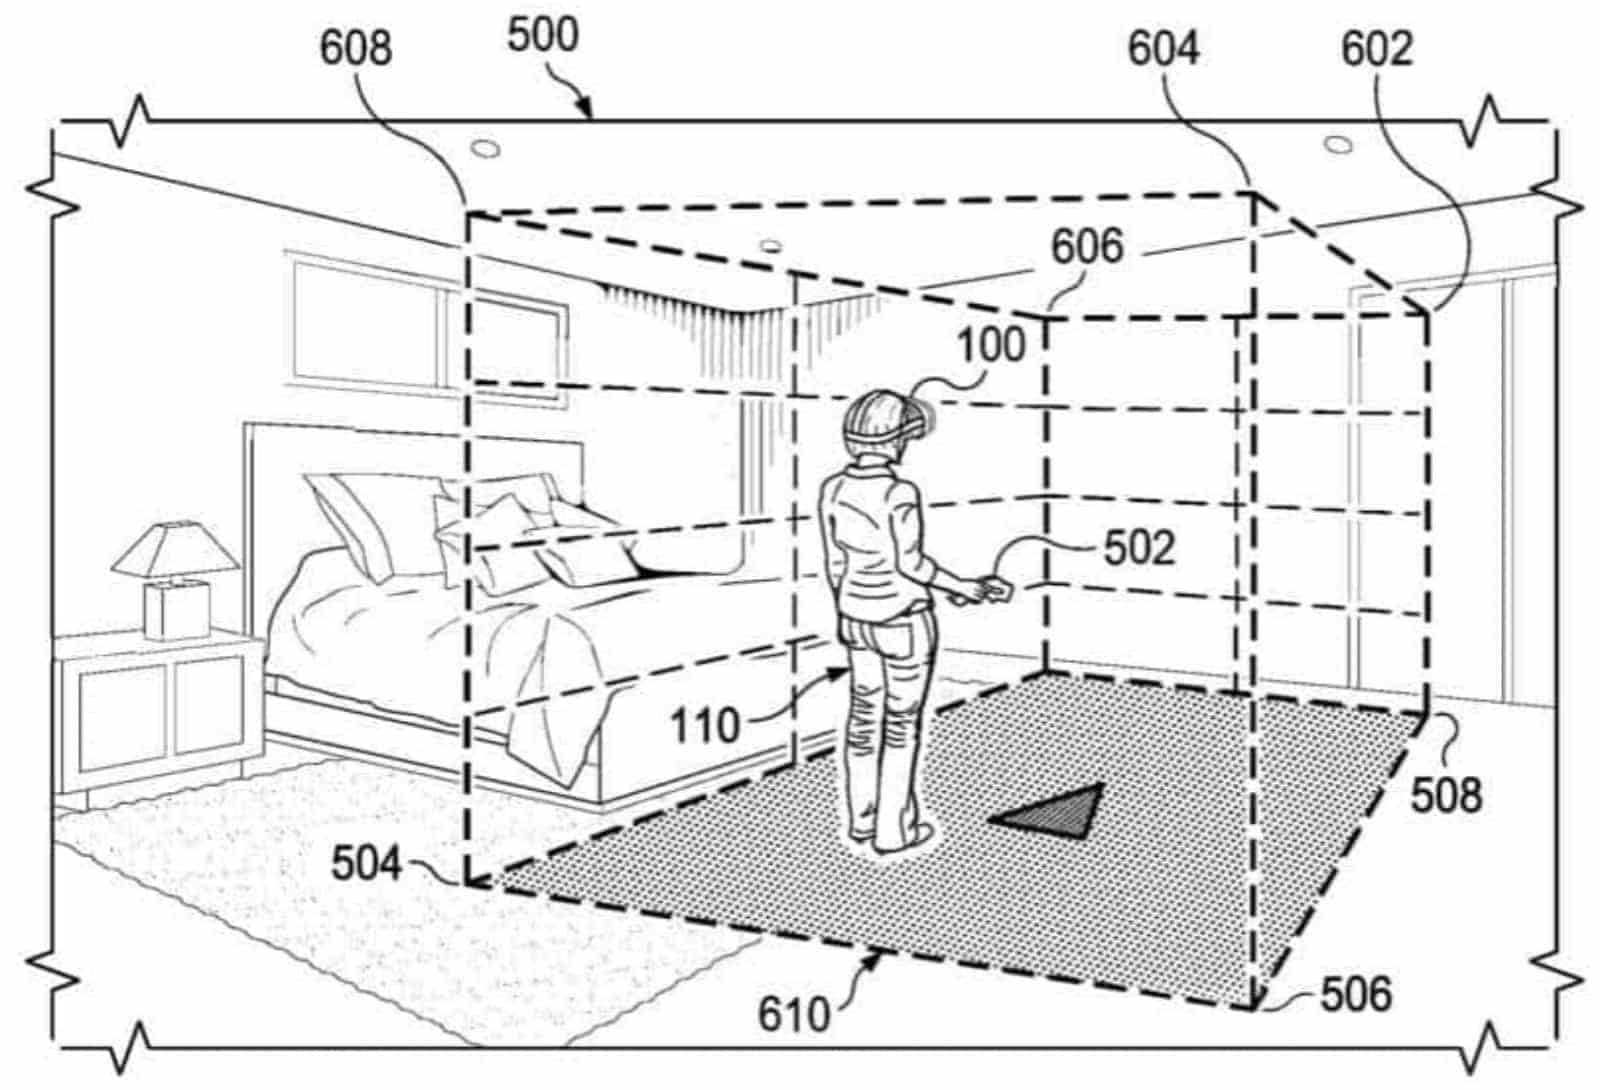 Google Looks To Develop Next Innovation In Room-Scale VR